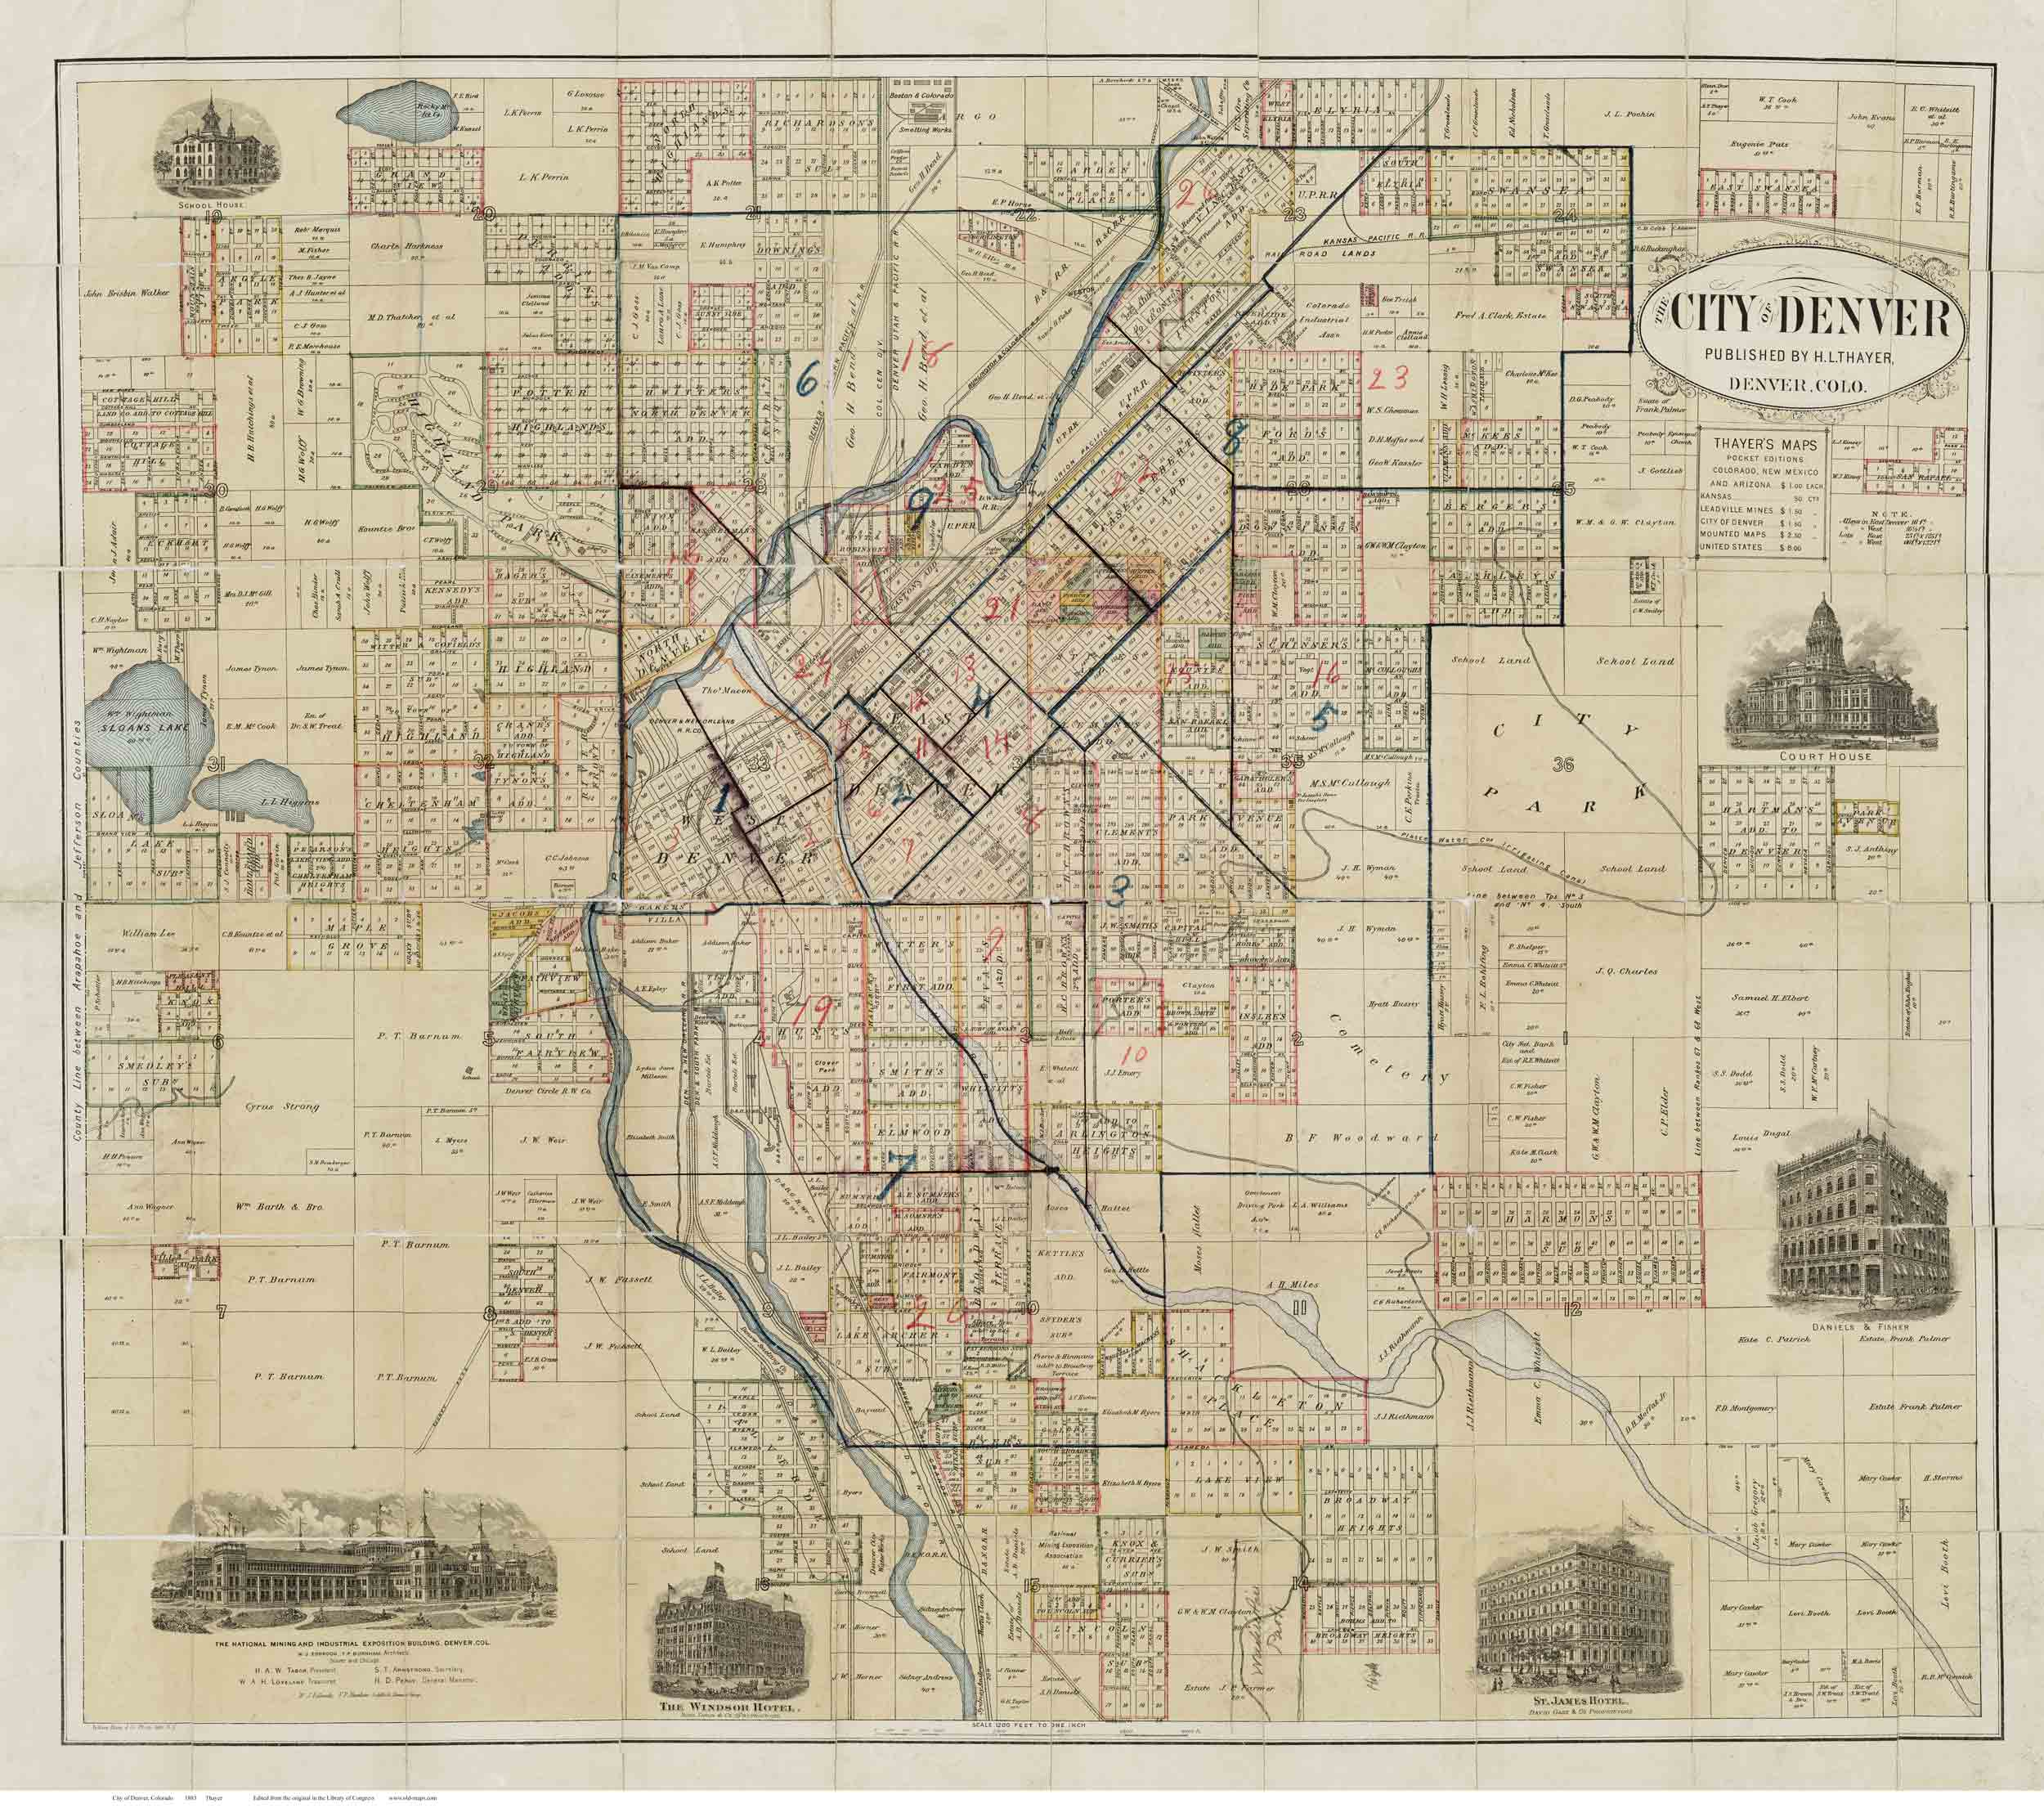 Denver 1883 Thayer - Old Map Reprint - Colorado Cities on san diego, boulder colorado map, centennial colorado map, missoula montana map, rocky mountains, evans colorado map, salt lake city, las vegas map, lakewood colorado map, colorado state map, casper wyoming map, elizabeth colorado map, colorado springs, estes park colorado map, denver tech center, colorado rockies map, new orleans, castle rock co map, federal heights colorado map, colorado us map, loveland colorado map, sterling colorado map, san antonio, usa map, united states map, kansas city,